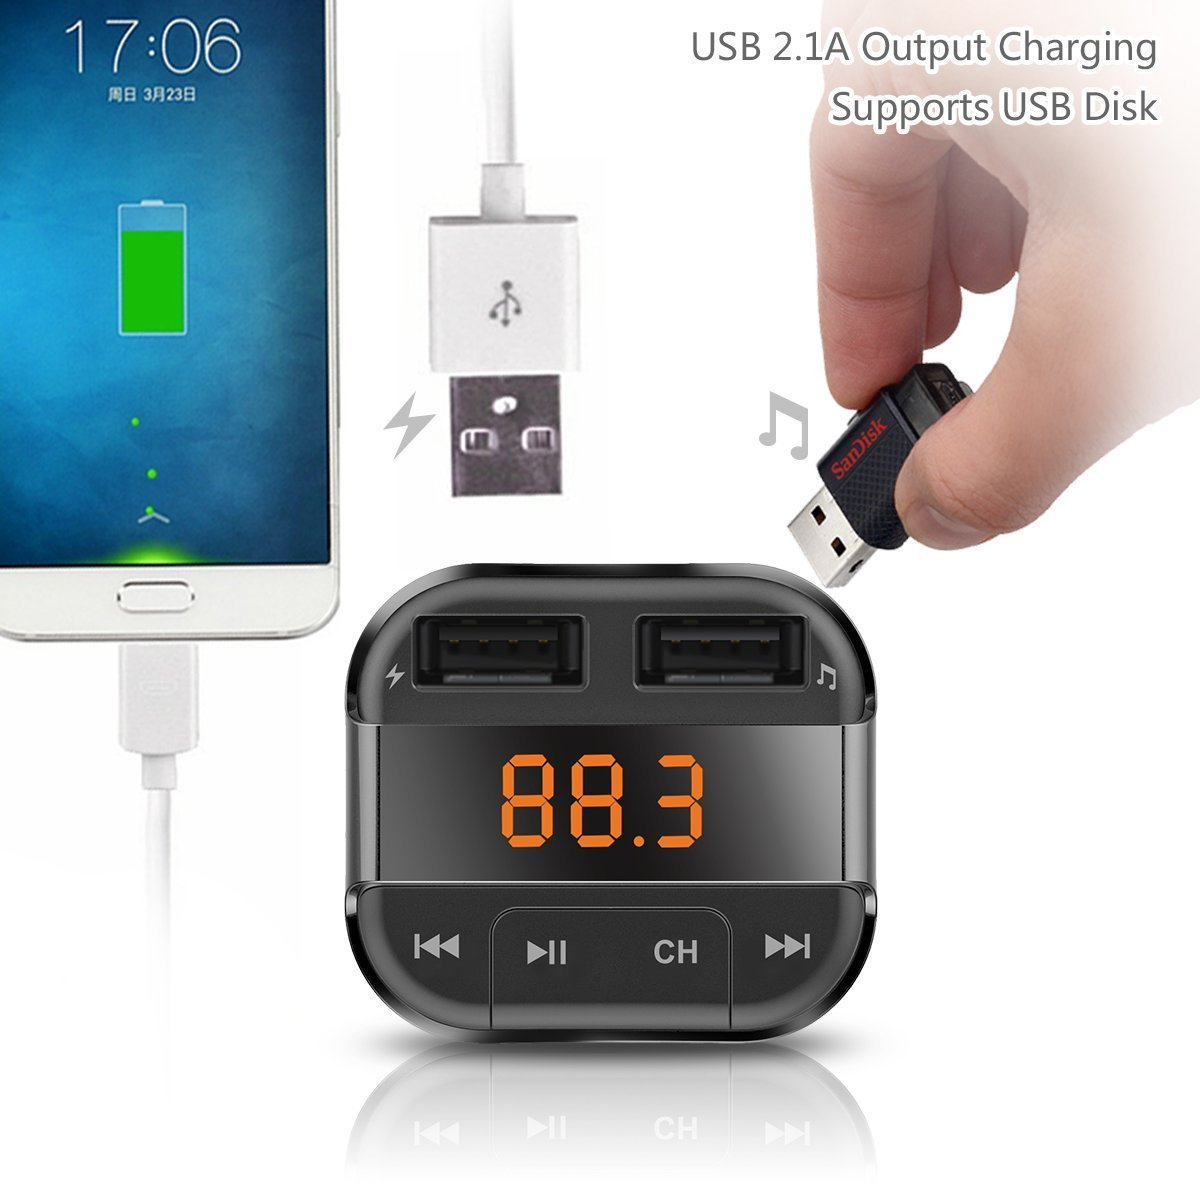 Perbeat Car Bluetooth FM transmitter for iPhone/Android with MP3 Music controls. Dual USB Charging ports. Supports USB/Micro SD card. Hands Free Remote control BT10 Black by Perbeat (Image #3)